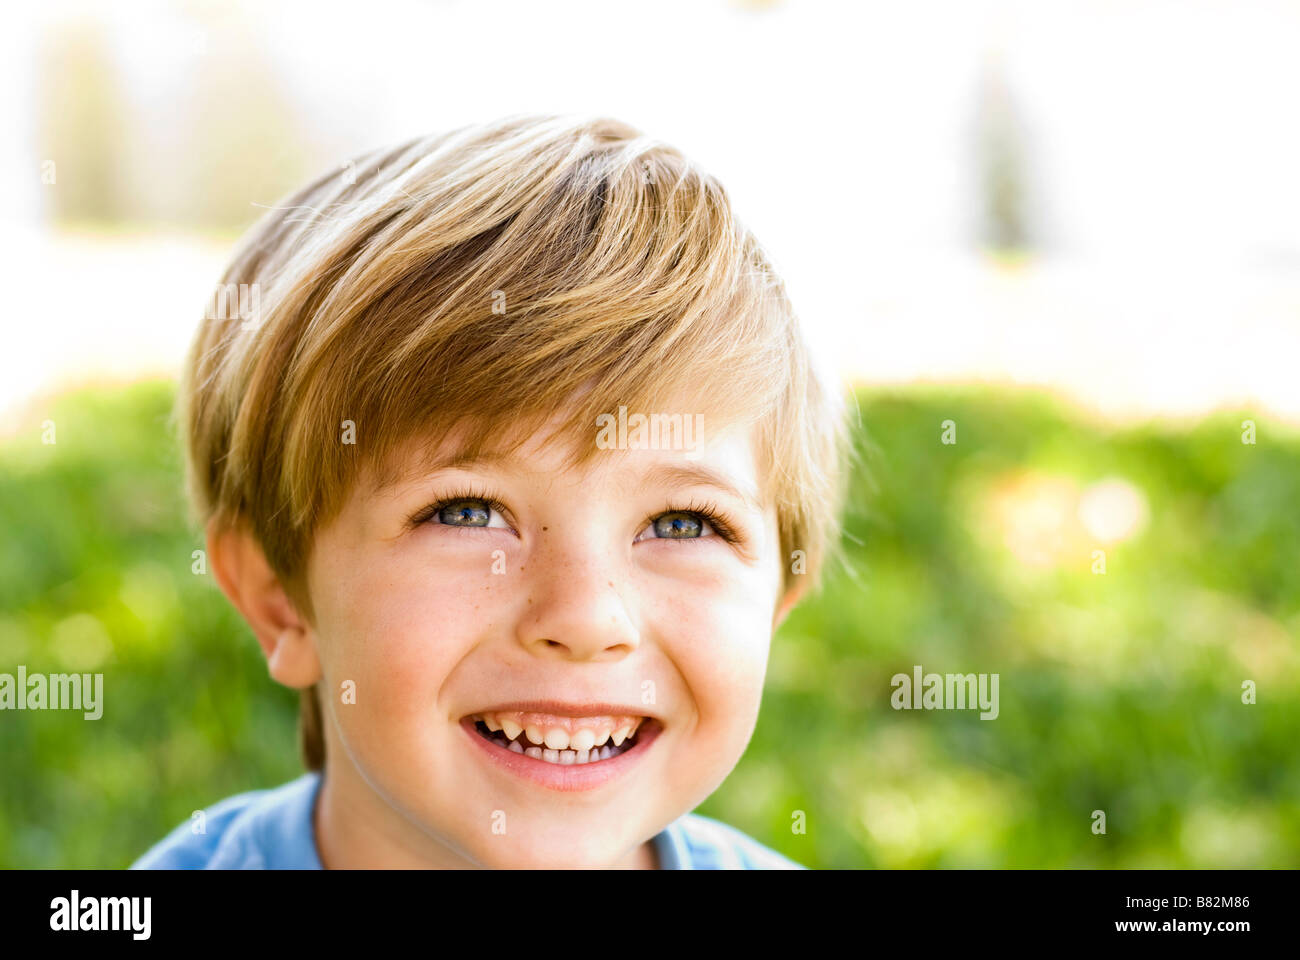 Boy laughing outdoors jouant Photo Stock